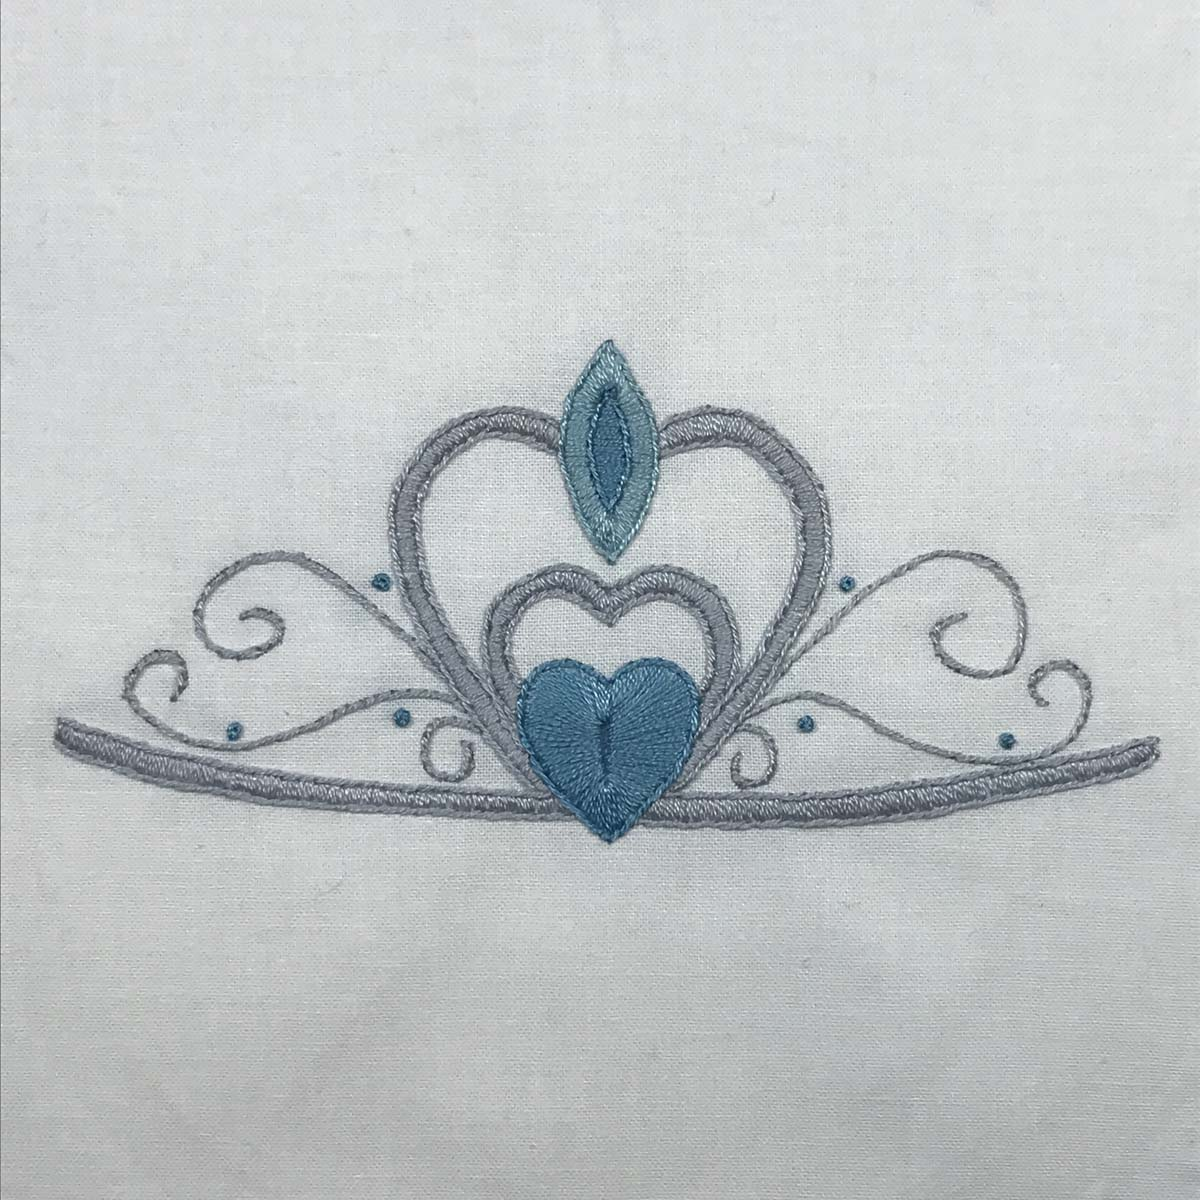 Hand-embroidered princess crown with light blue stitched gems.